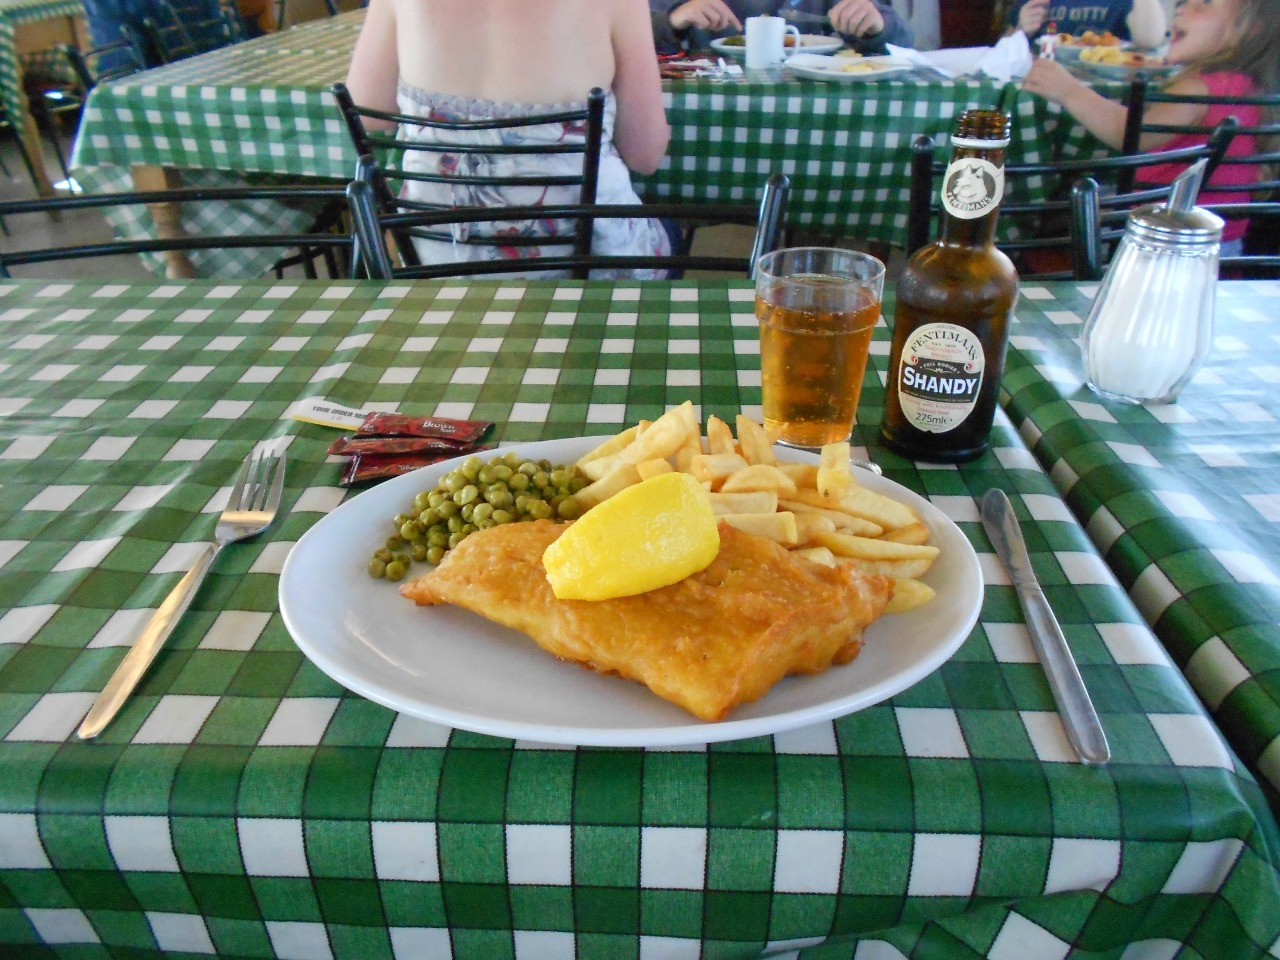 Fish and Chips with a Shandy. You won't find a more British seaside lunch than this.